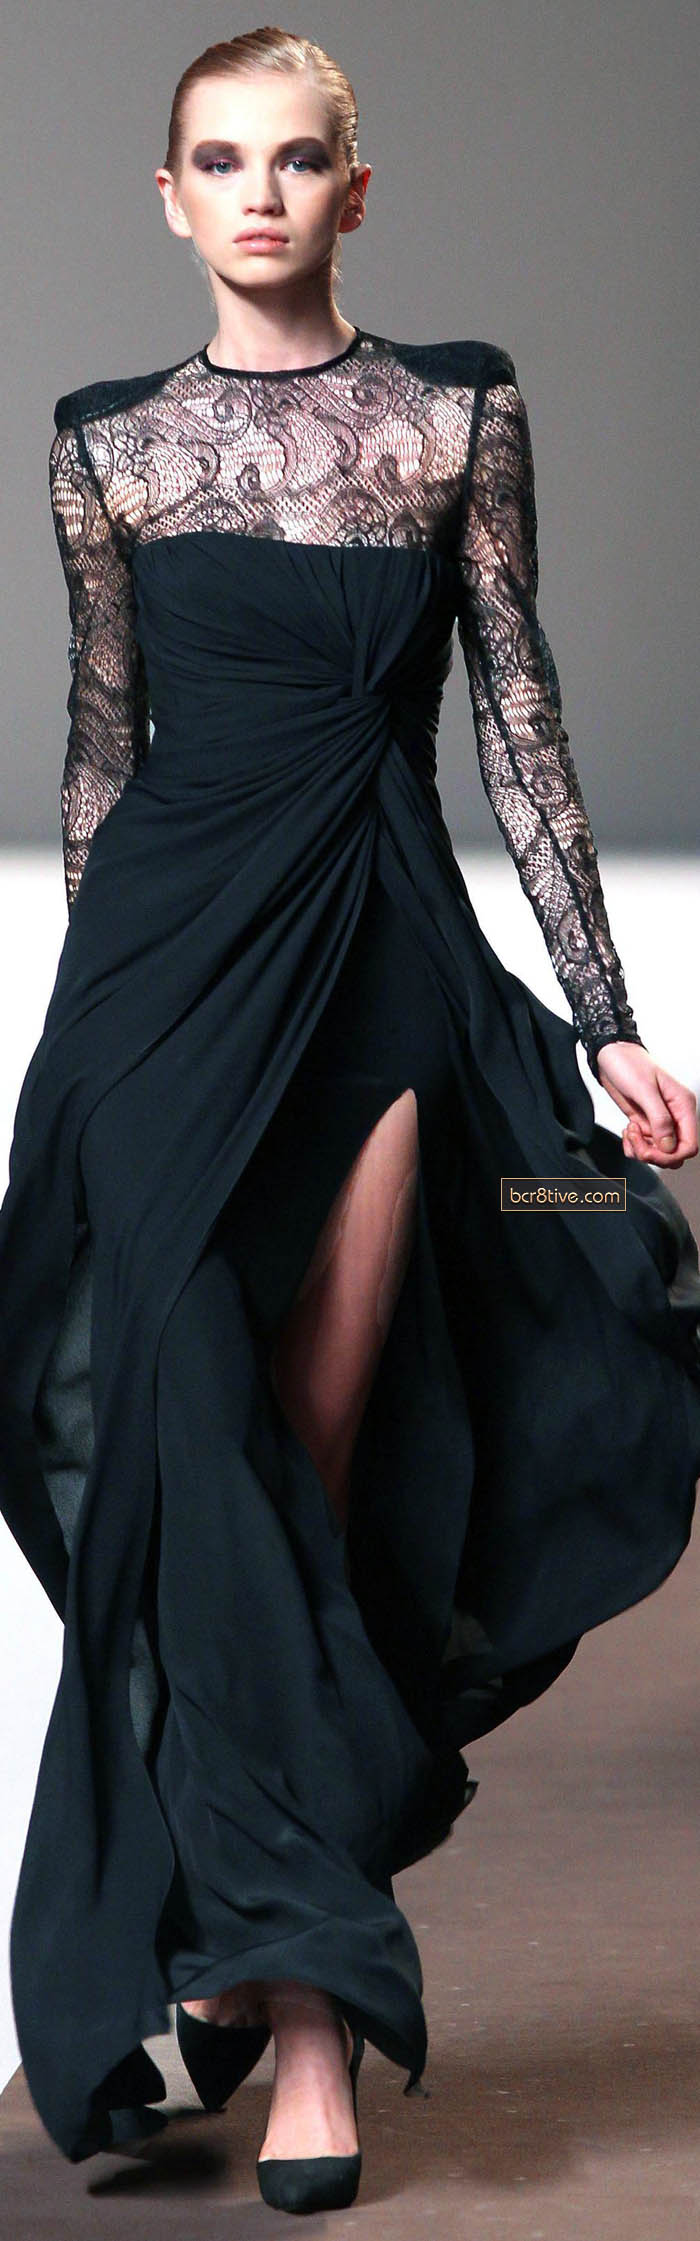 Elie Saab Fall Winter 2010 Ready to Wear